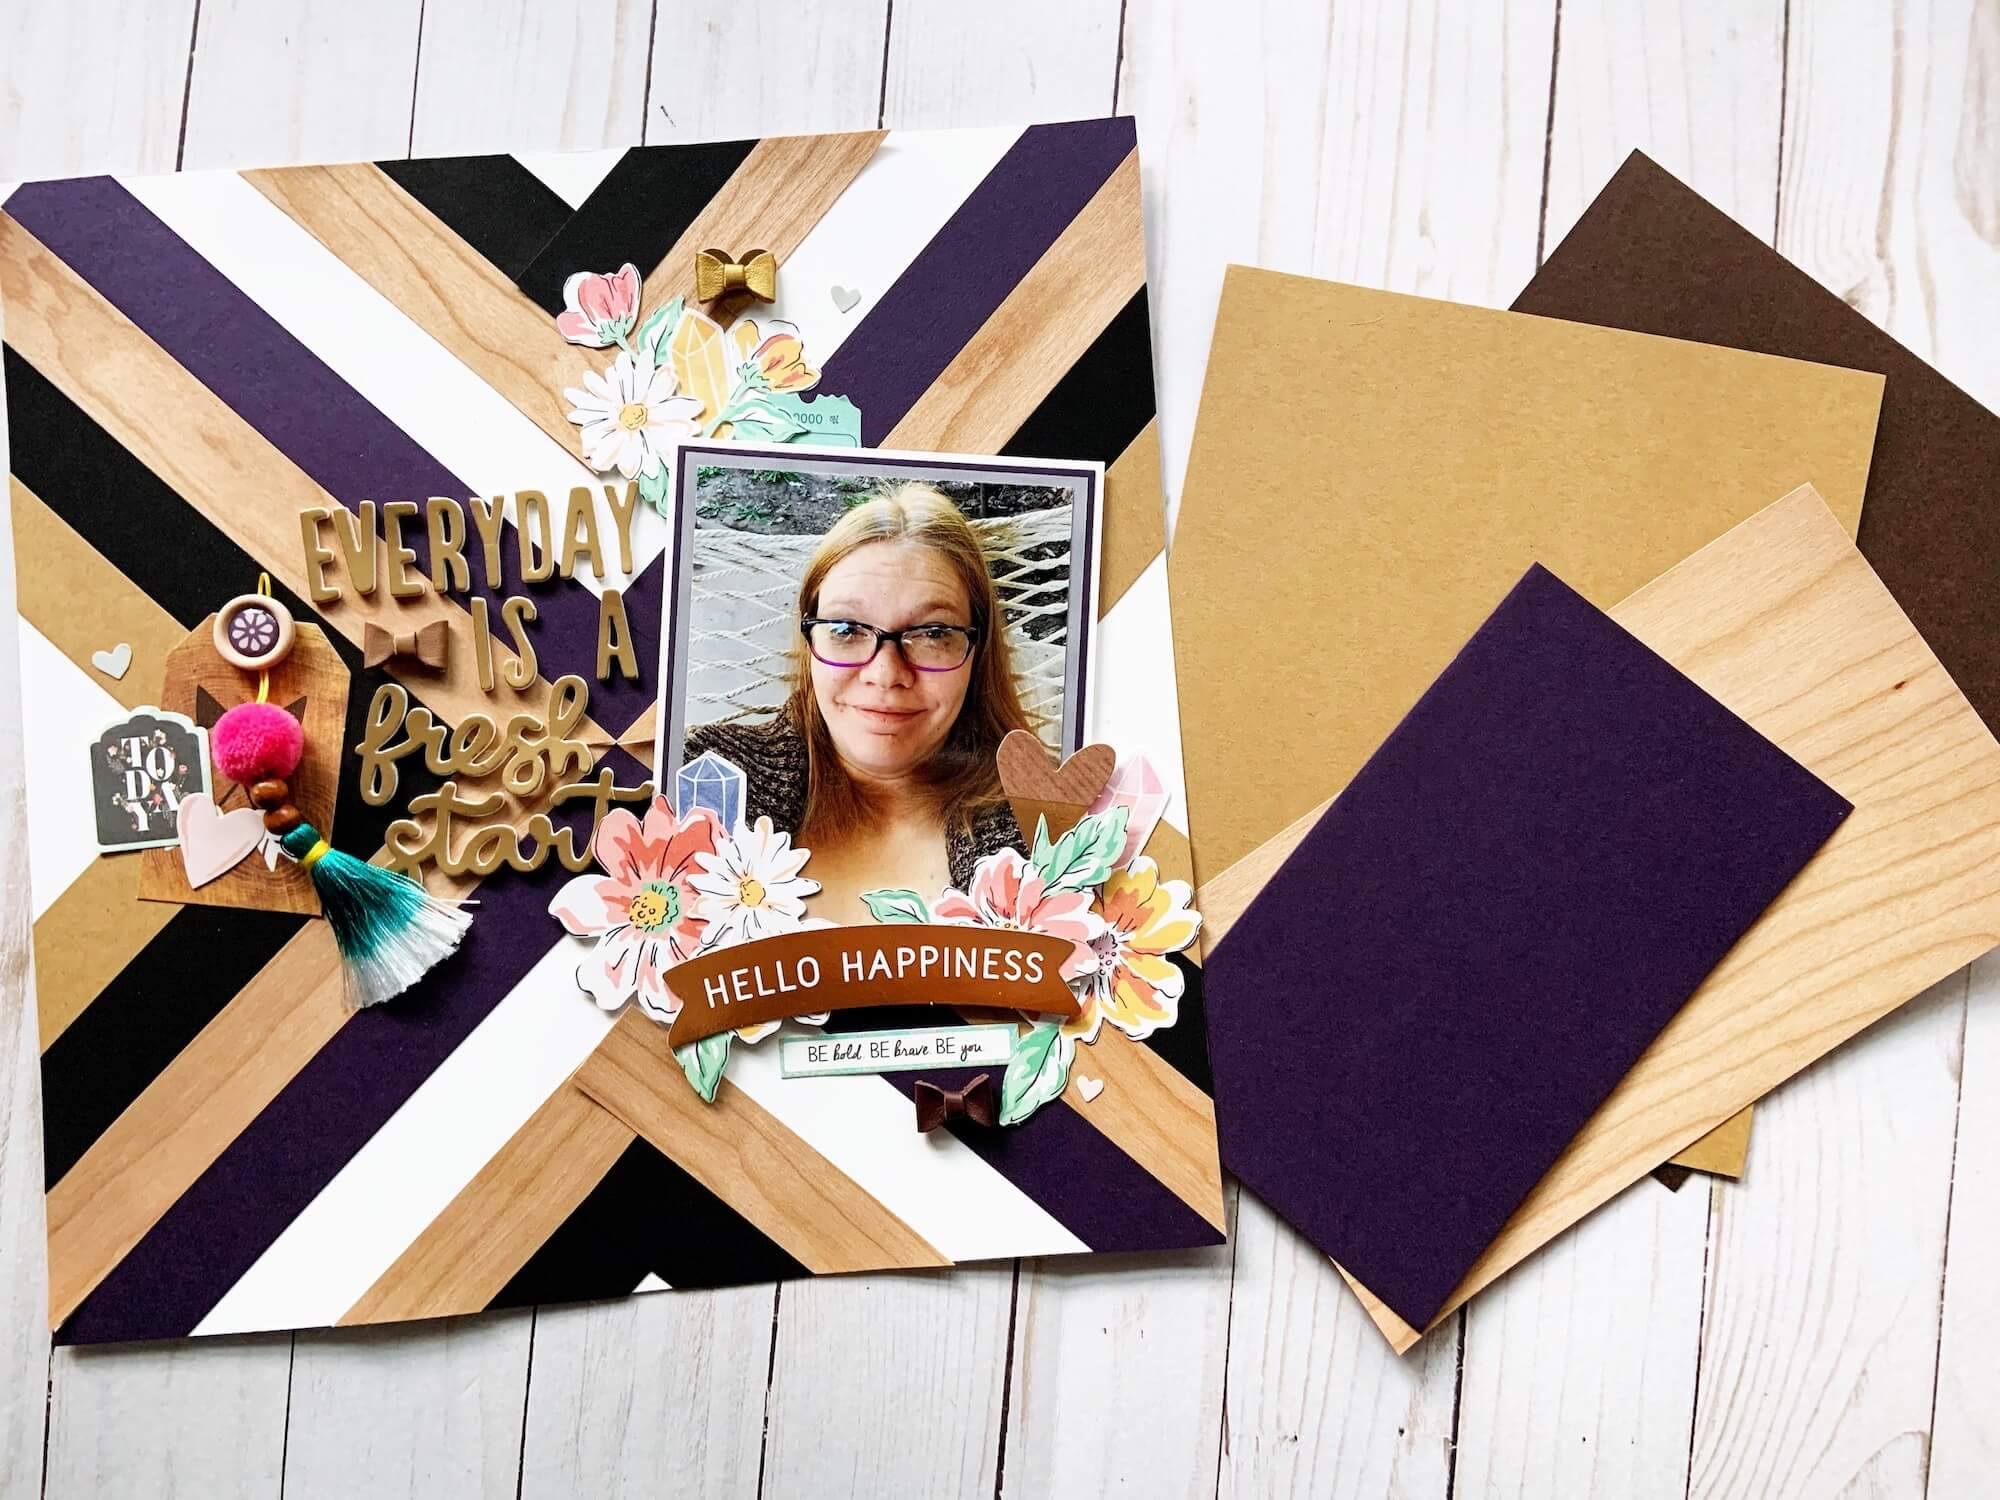 Wood Veneer Geometric Patterned Scrapbook Layout